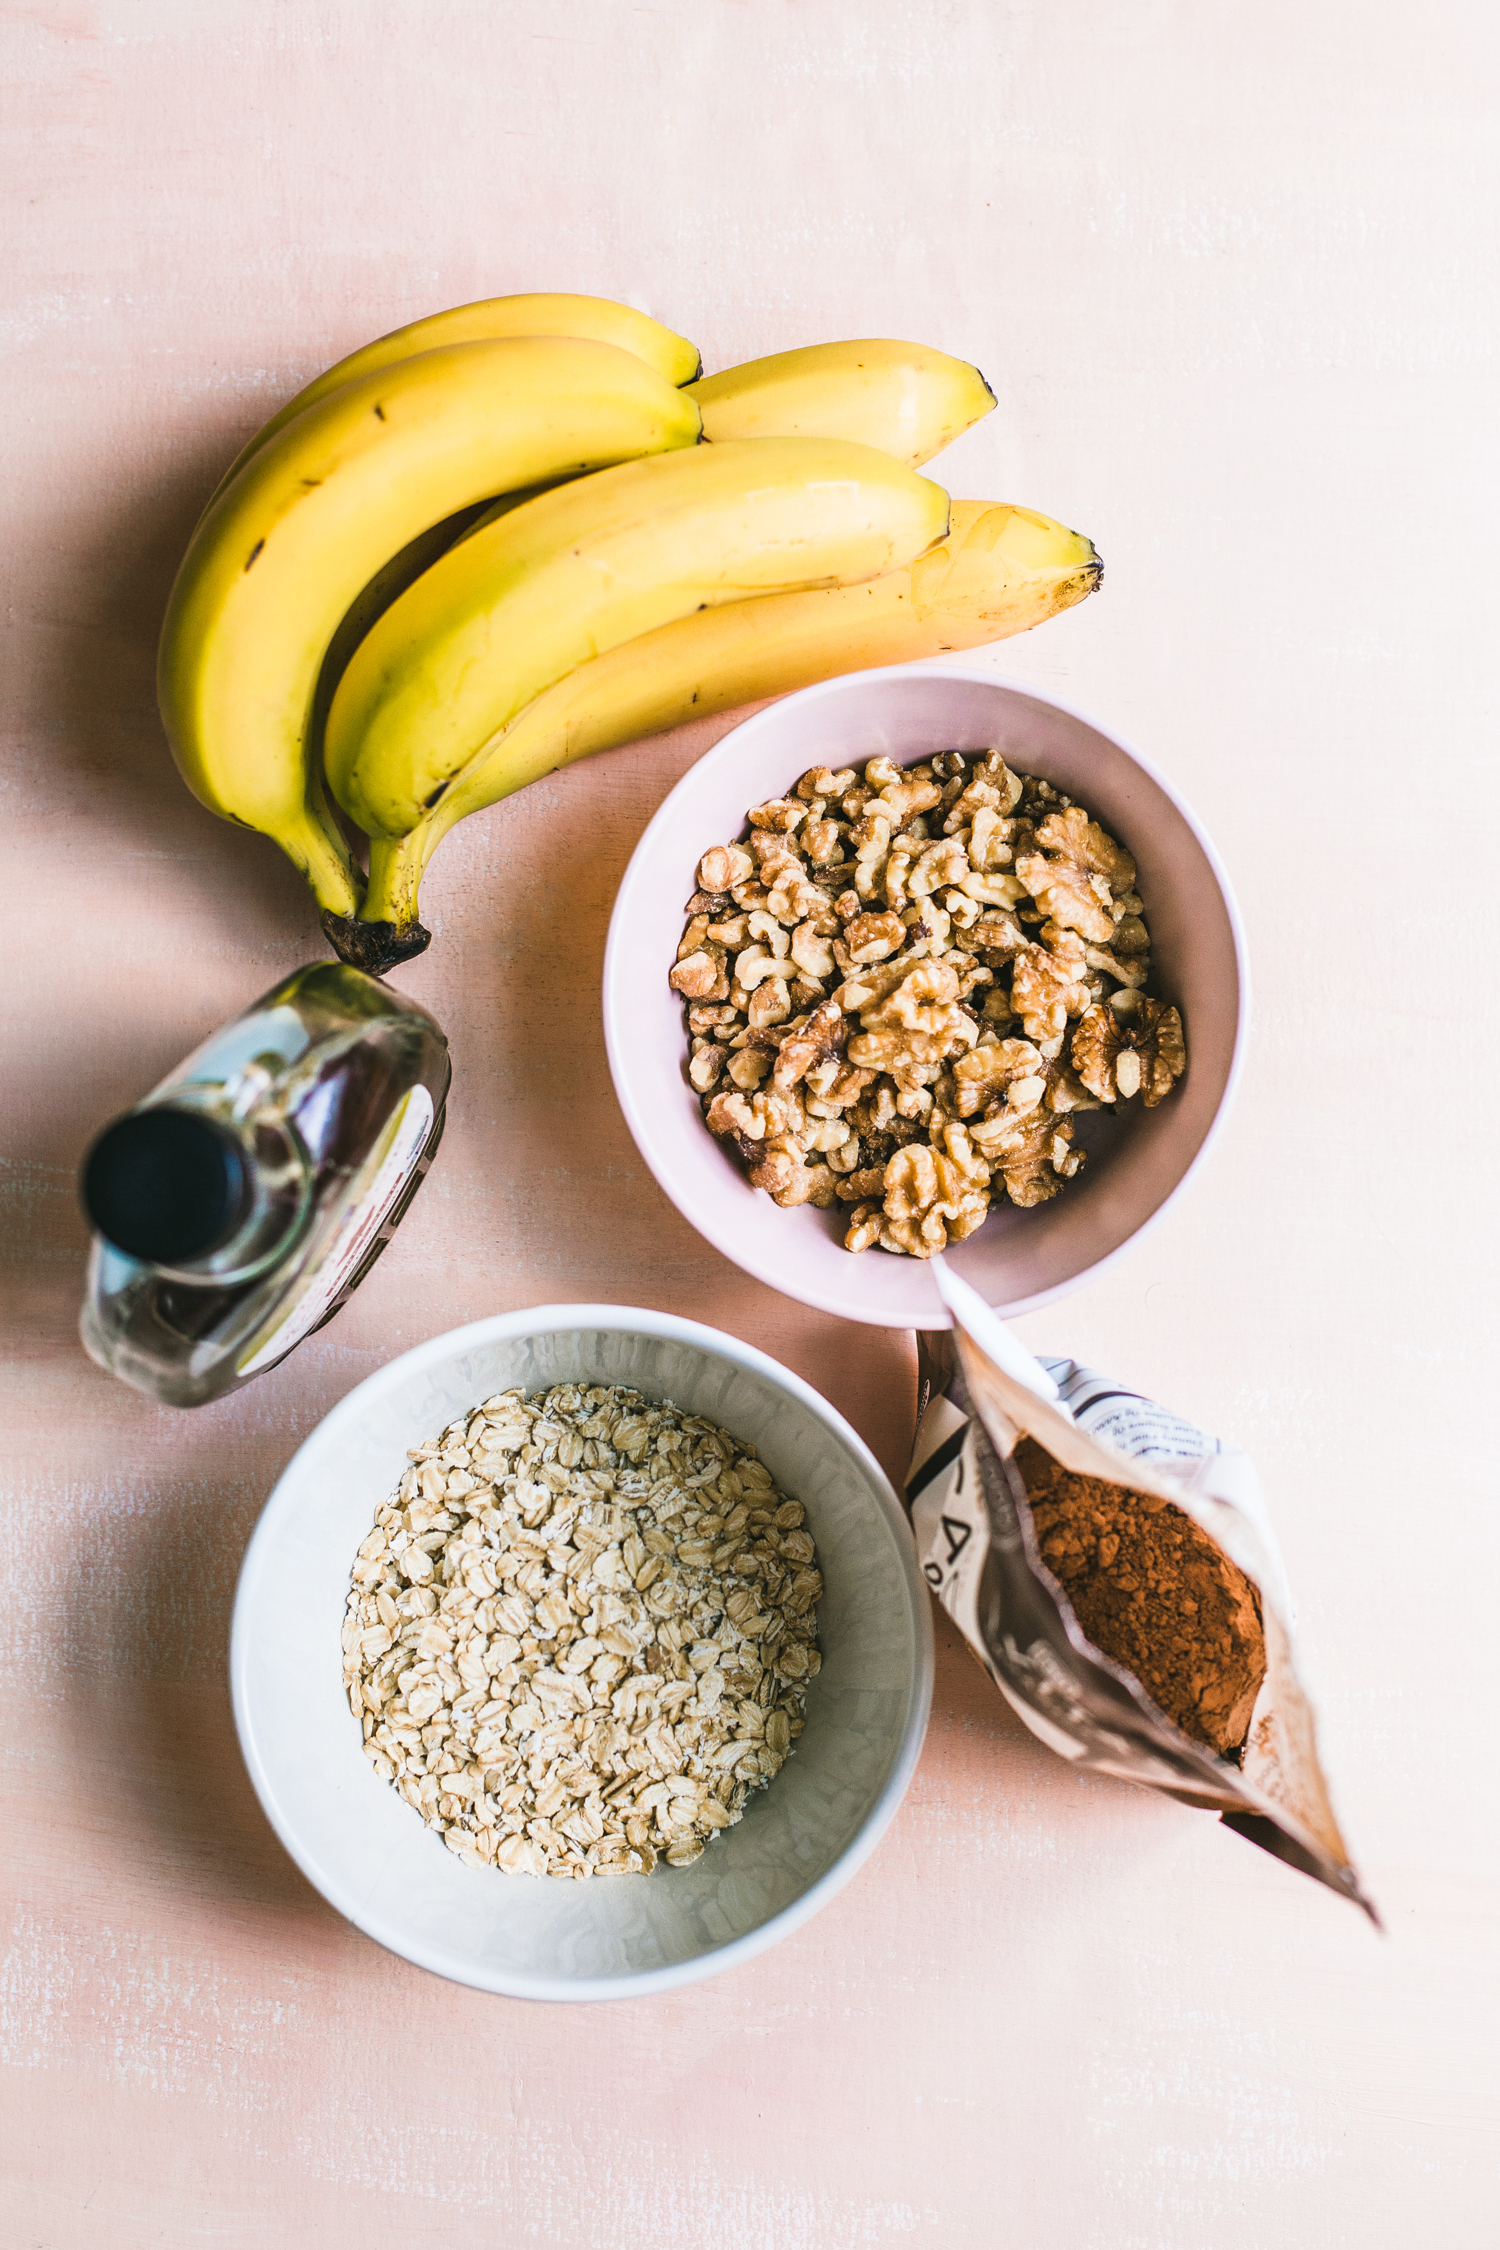 The Simplest Chocolate-Banana Granola (Oil-Free!) - Golubka Kitchen